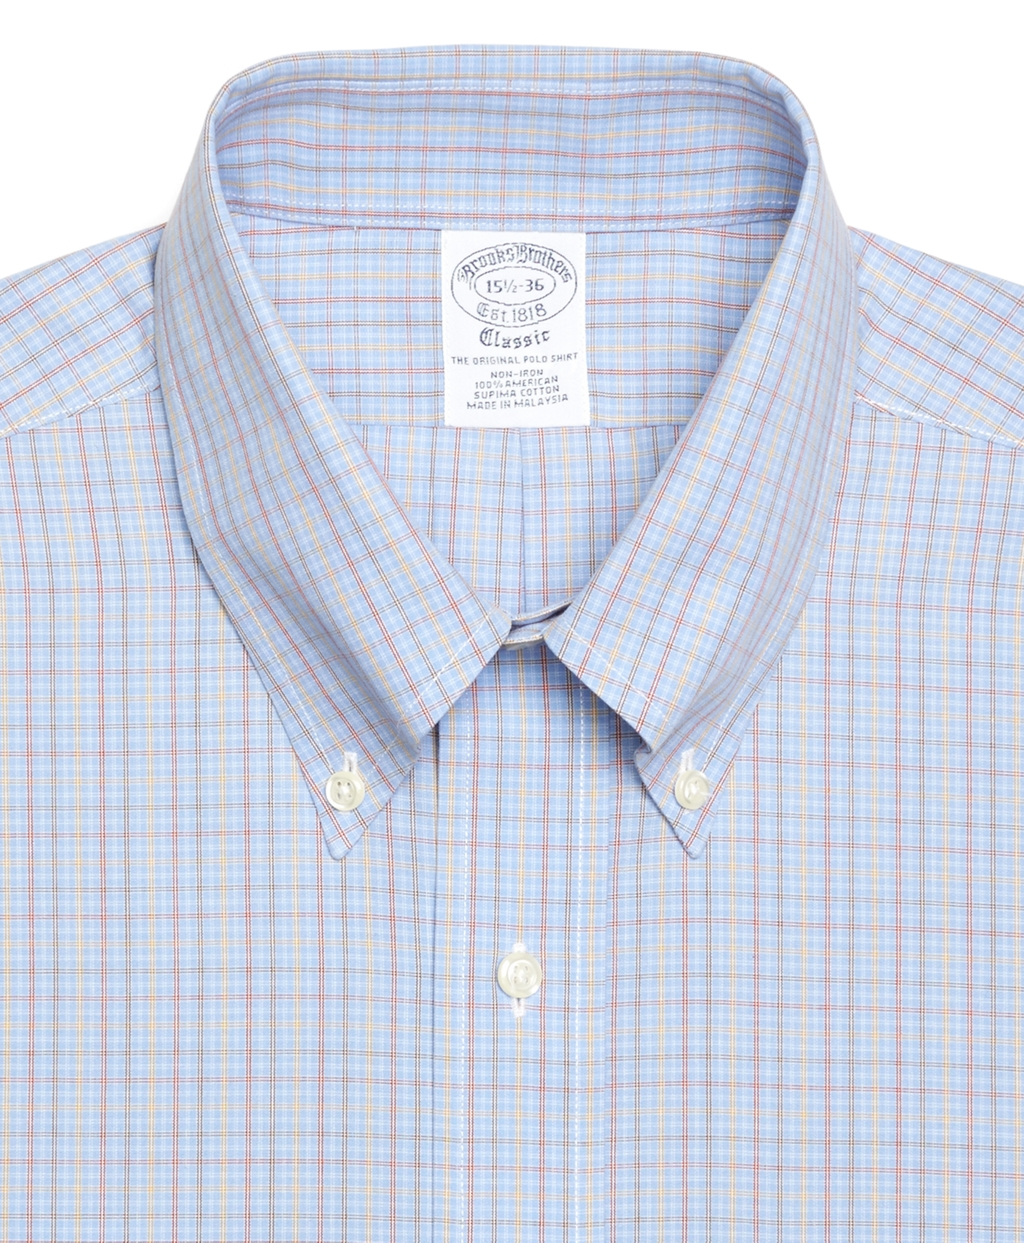 Brooks brothers non iron slim fit multicheck dress shirt for Slim fit non iron dress shirts